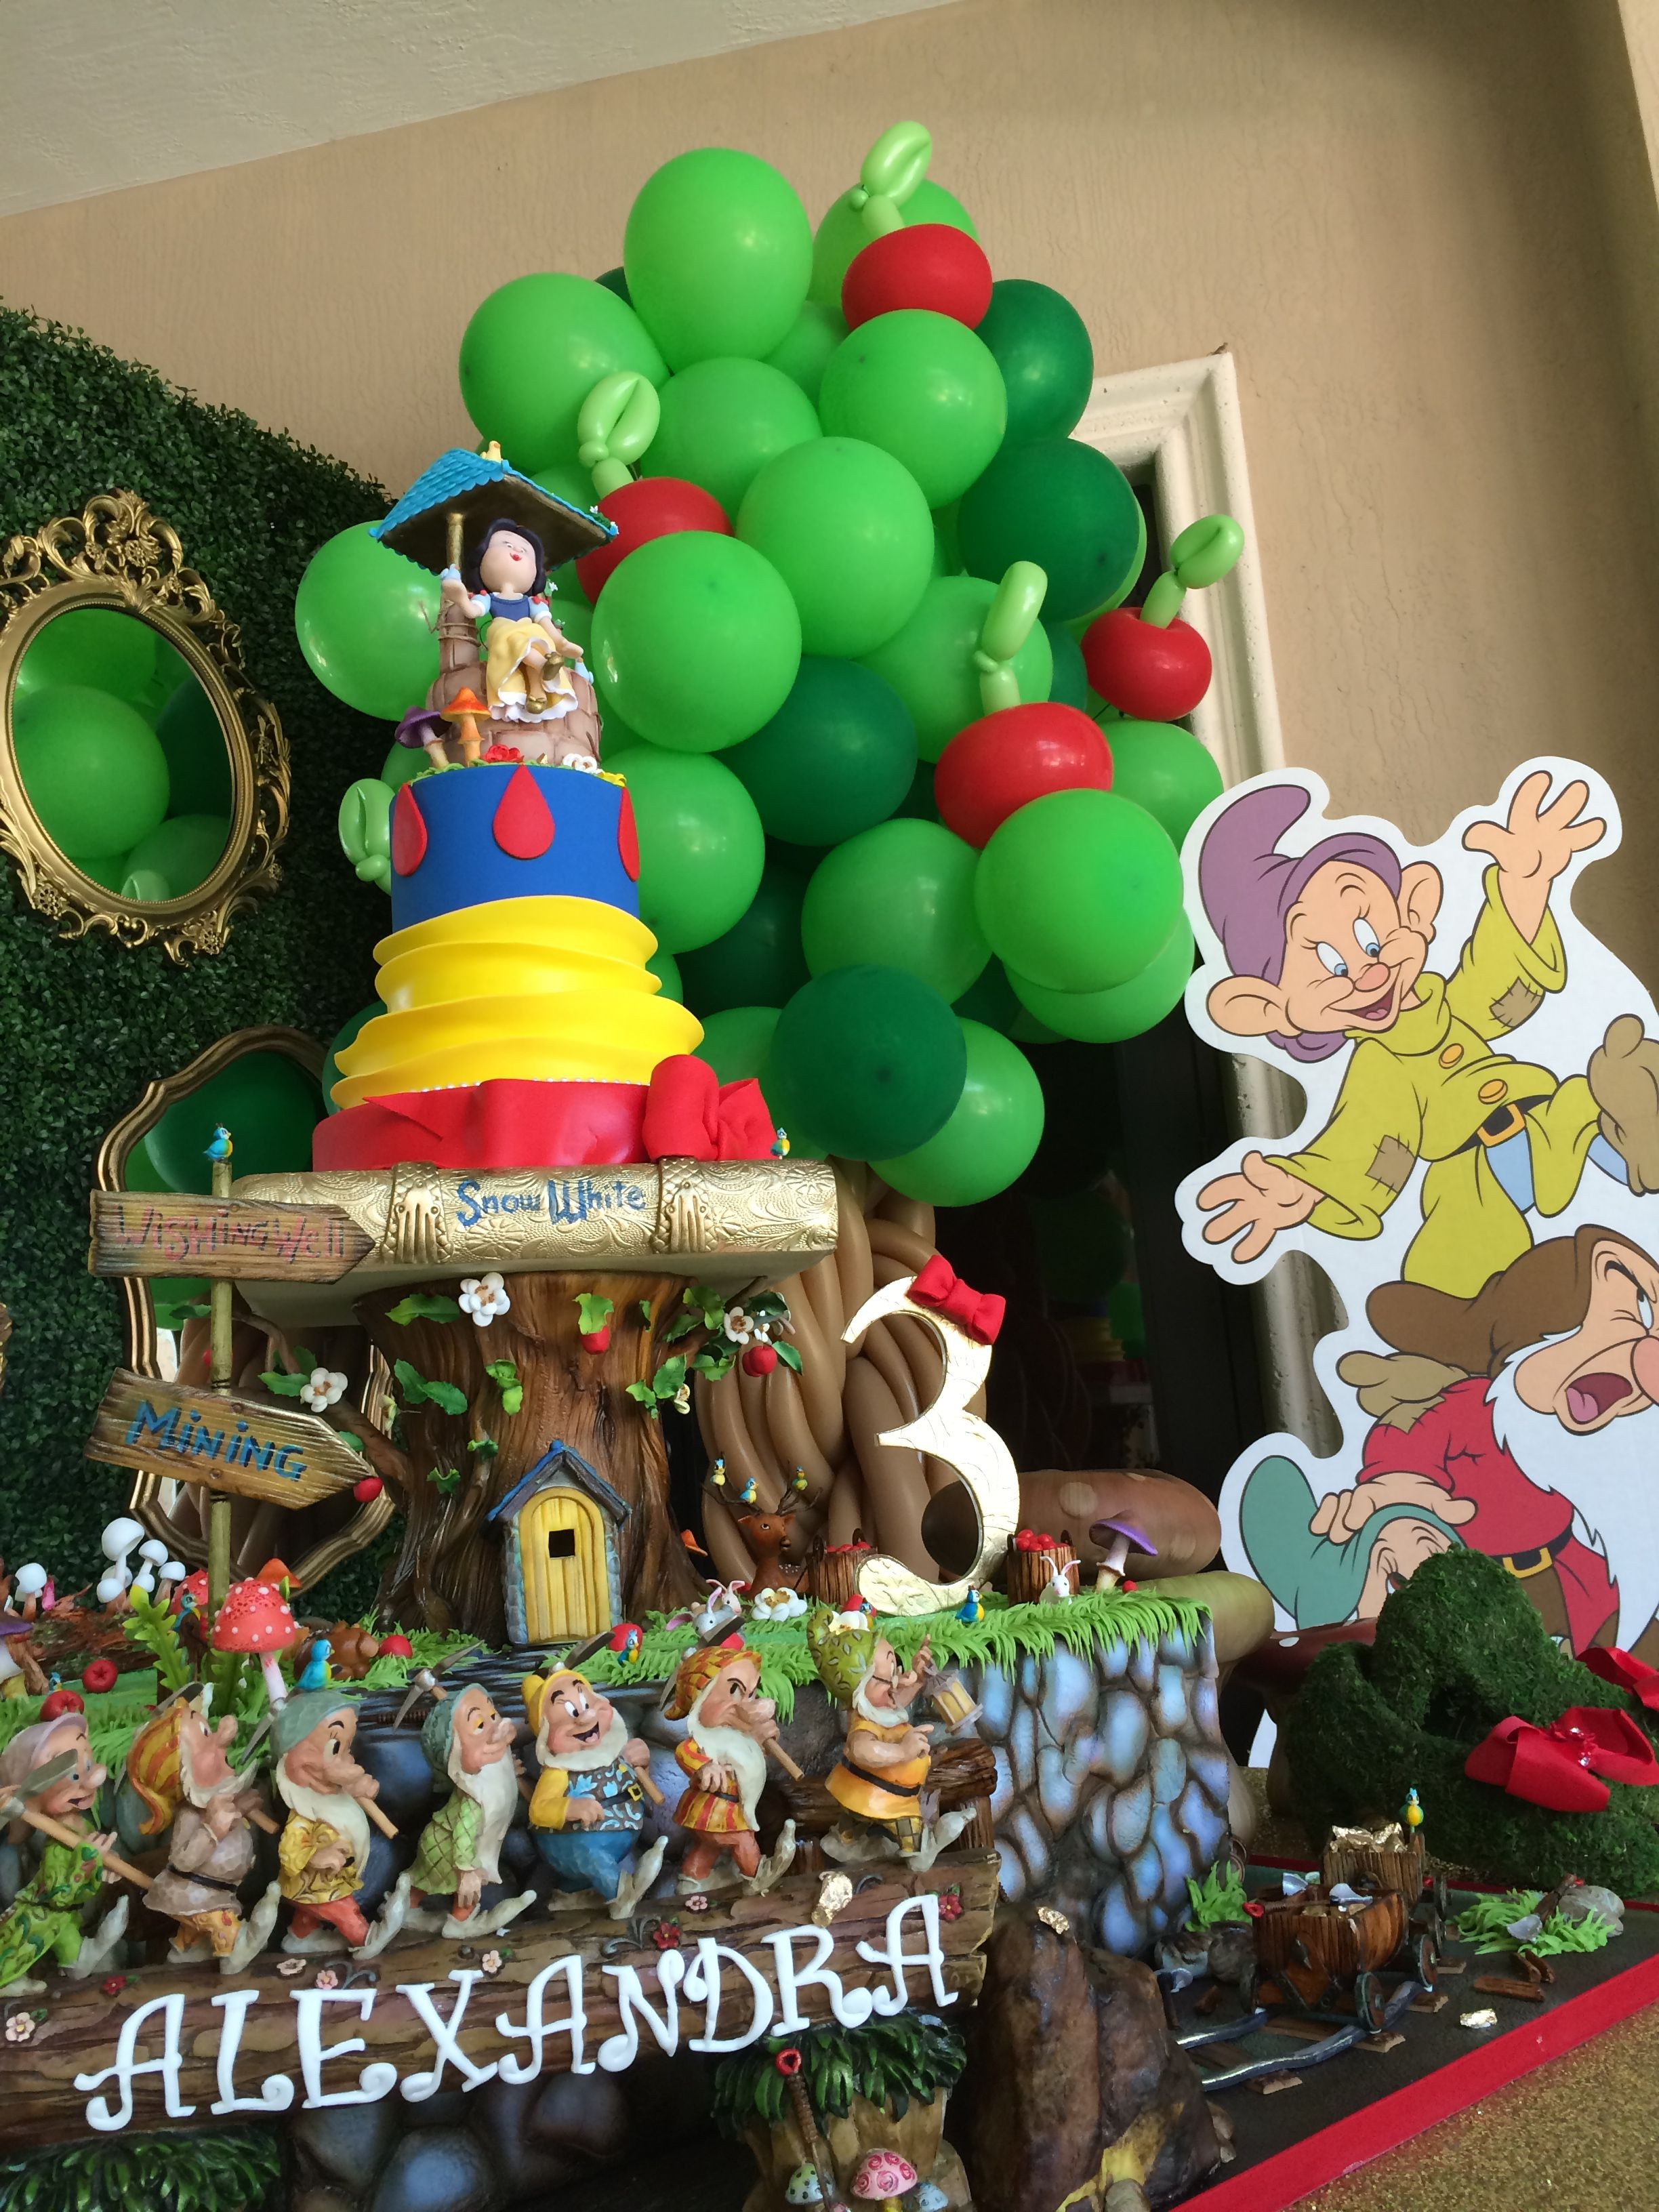 Snow White And The Seven Dwarfs Theme Ideas For Kids Party